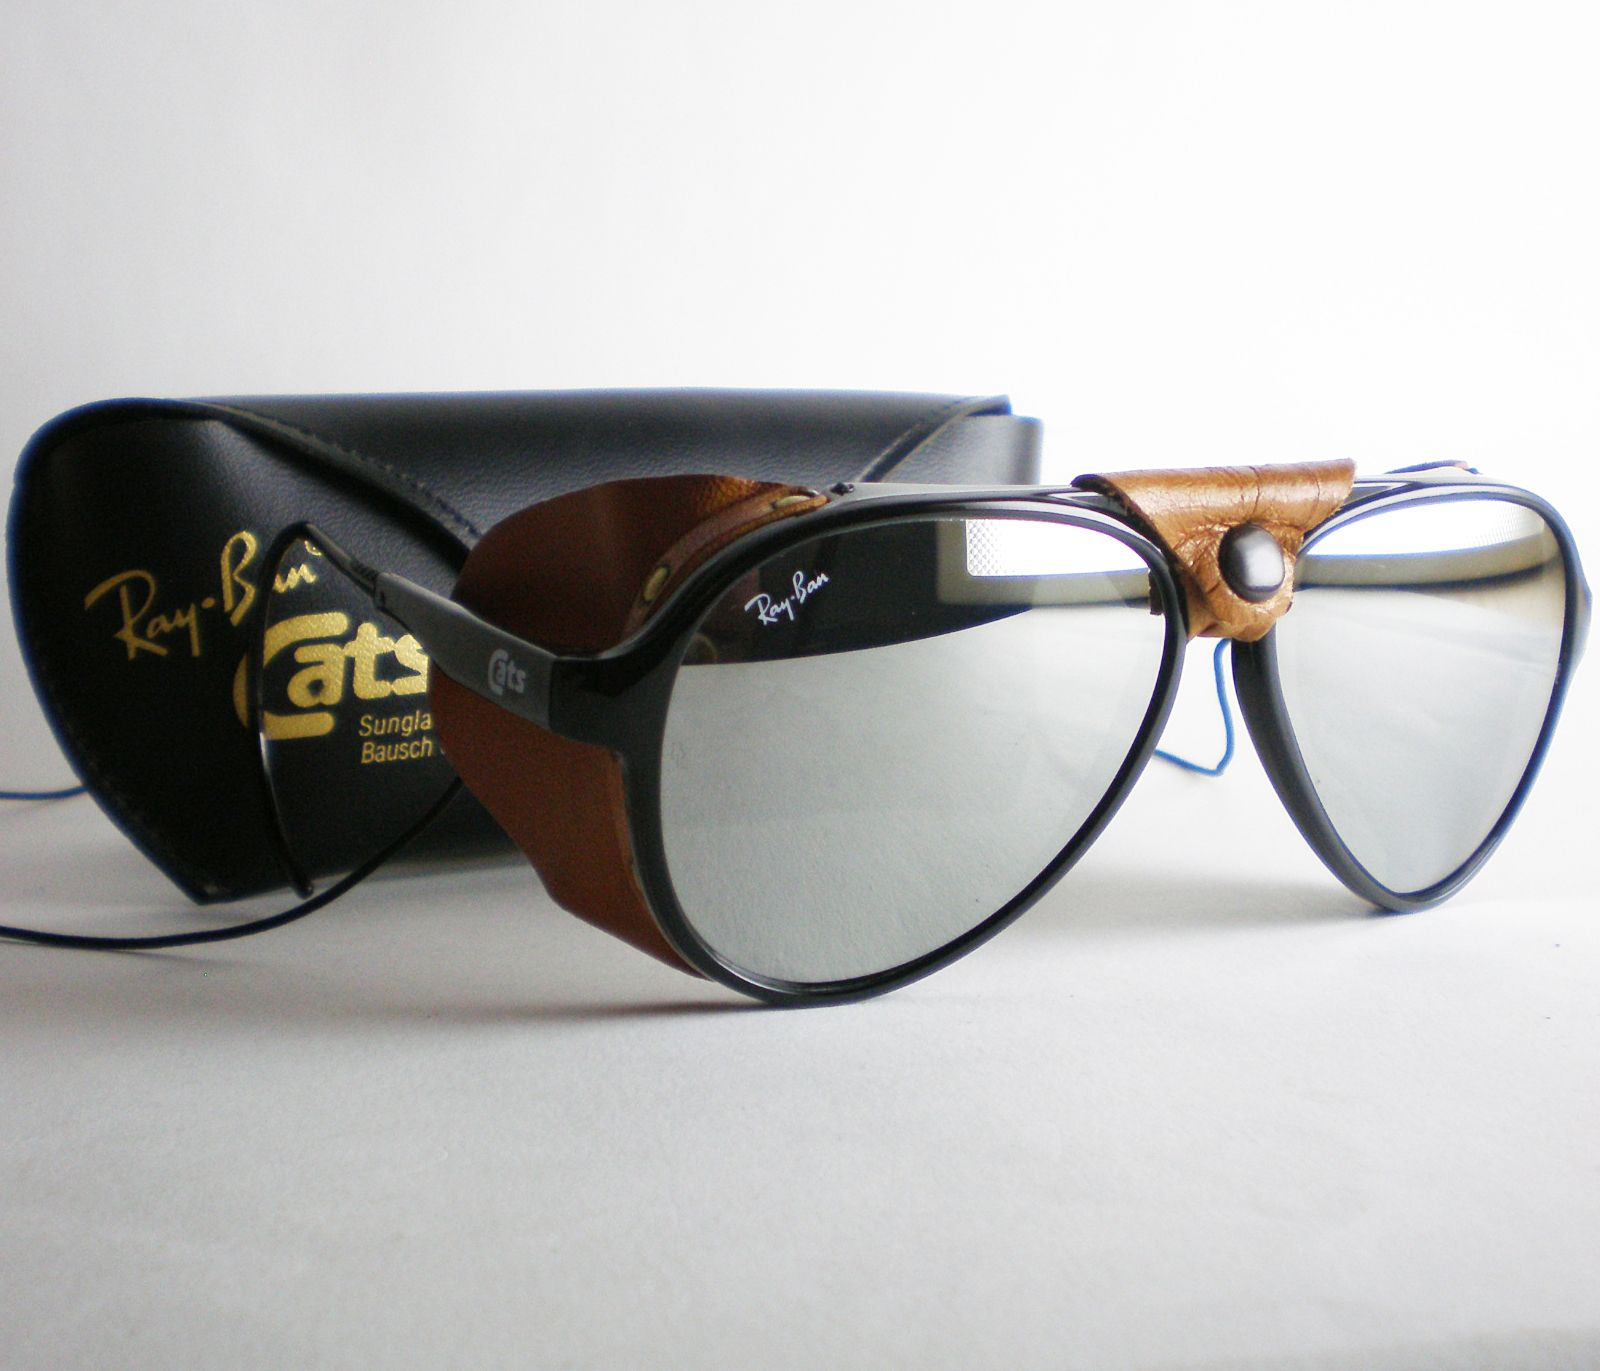 Vintage Ray Ban CATS 8000 MIRRORED Sunglasses aviator side shield leathers  black   eBay 64db66ebc3